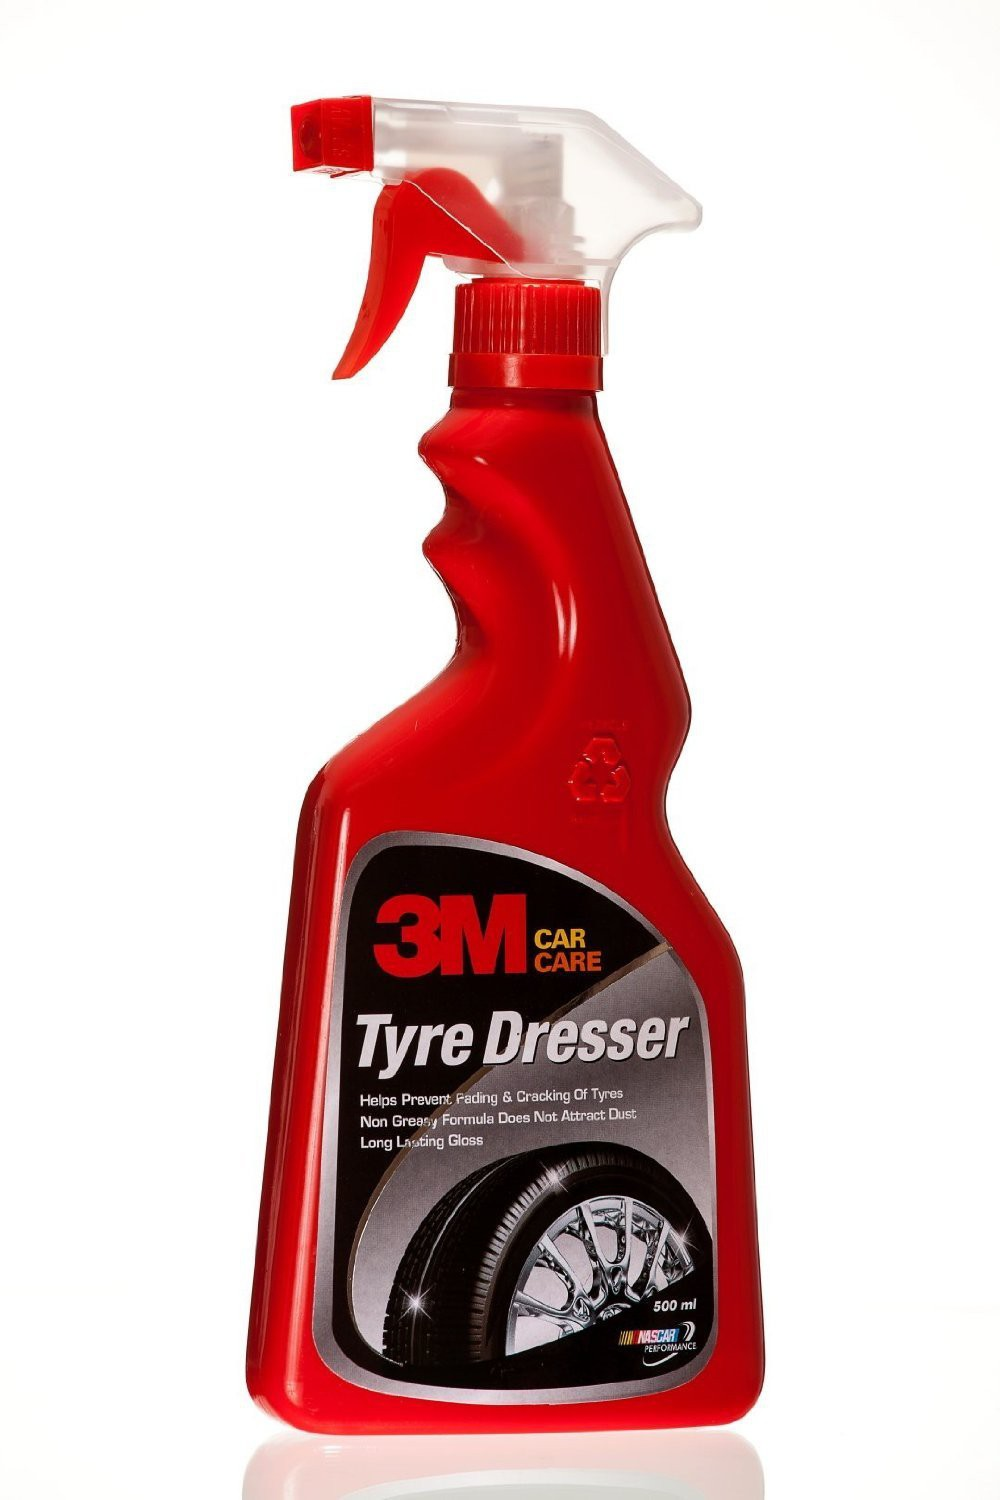 Deals | Under ₹470 Wheel Tire Cleaner